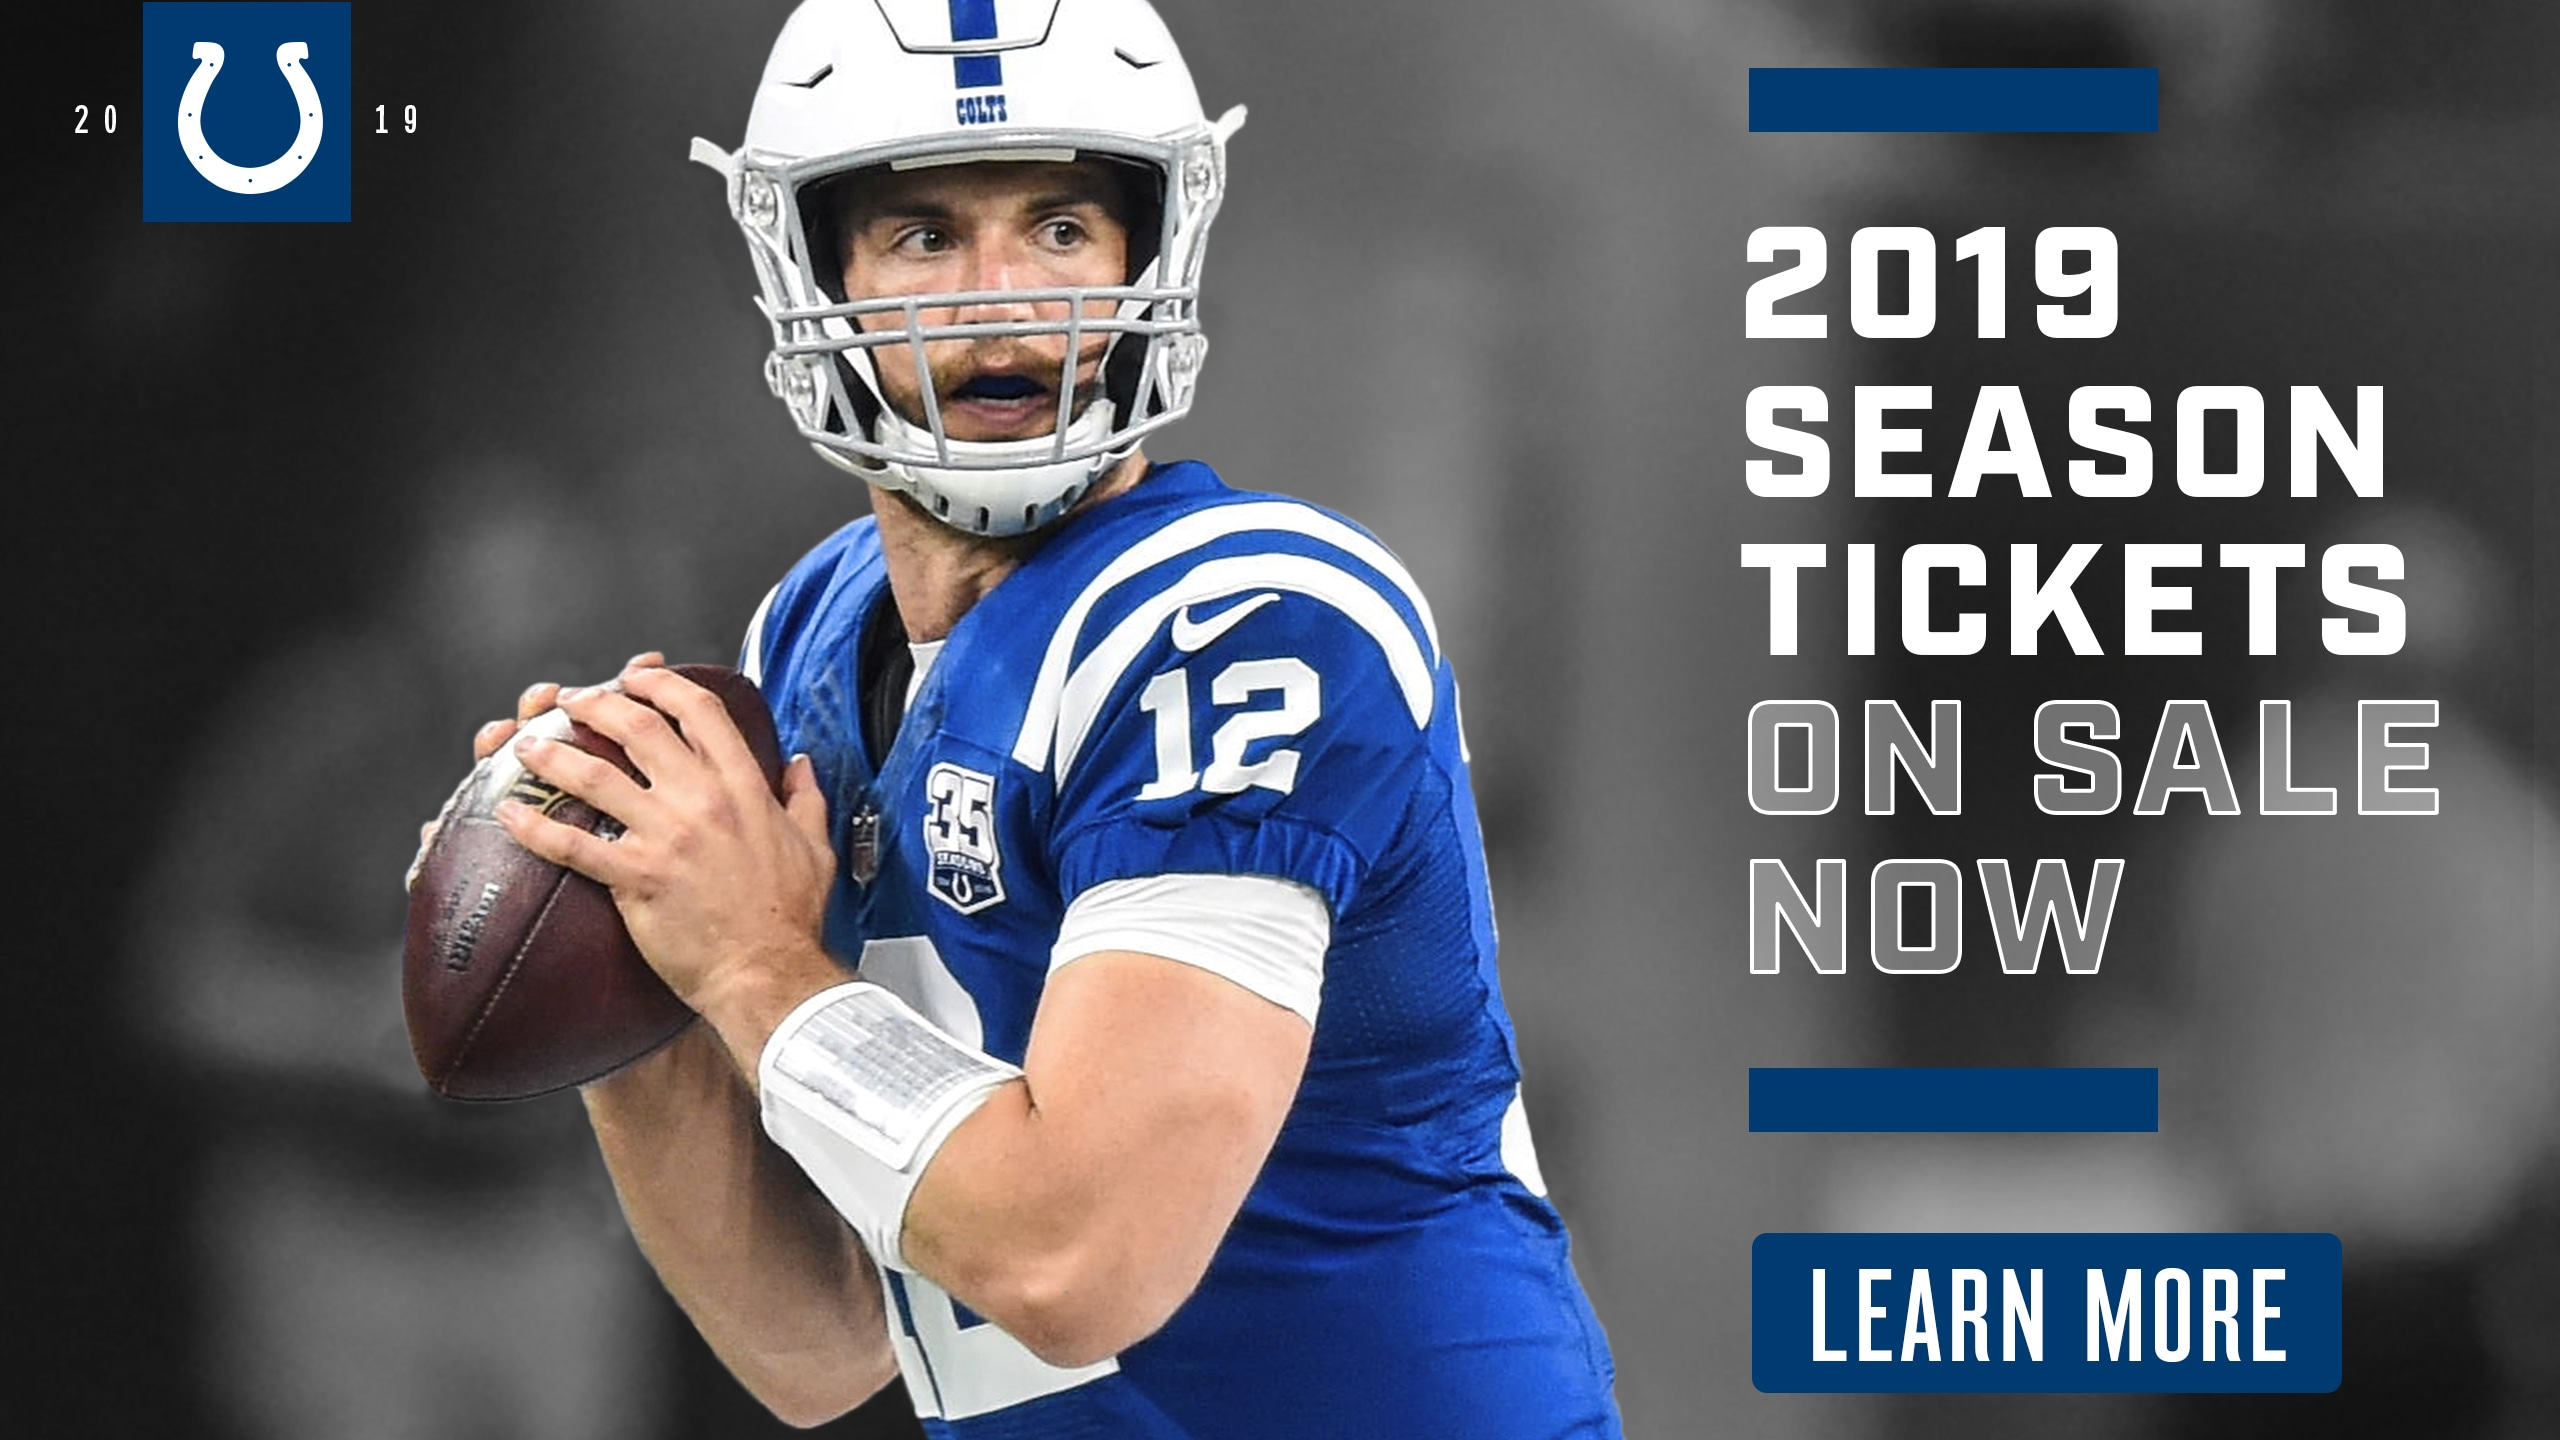 b21e9fdc5 The Official Website of the Indianapolis Colts